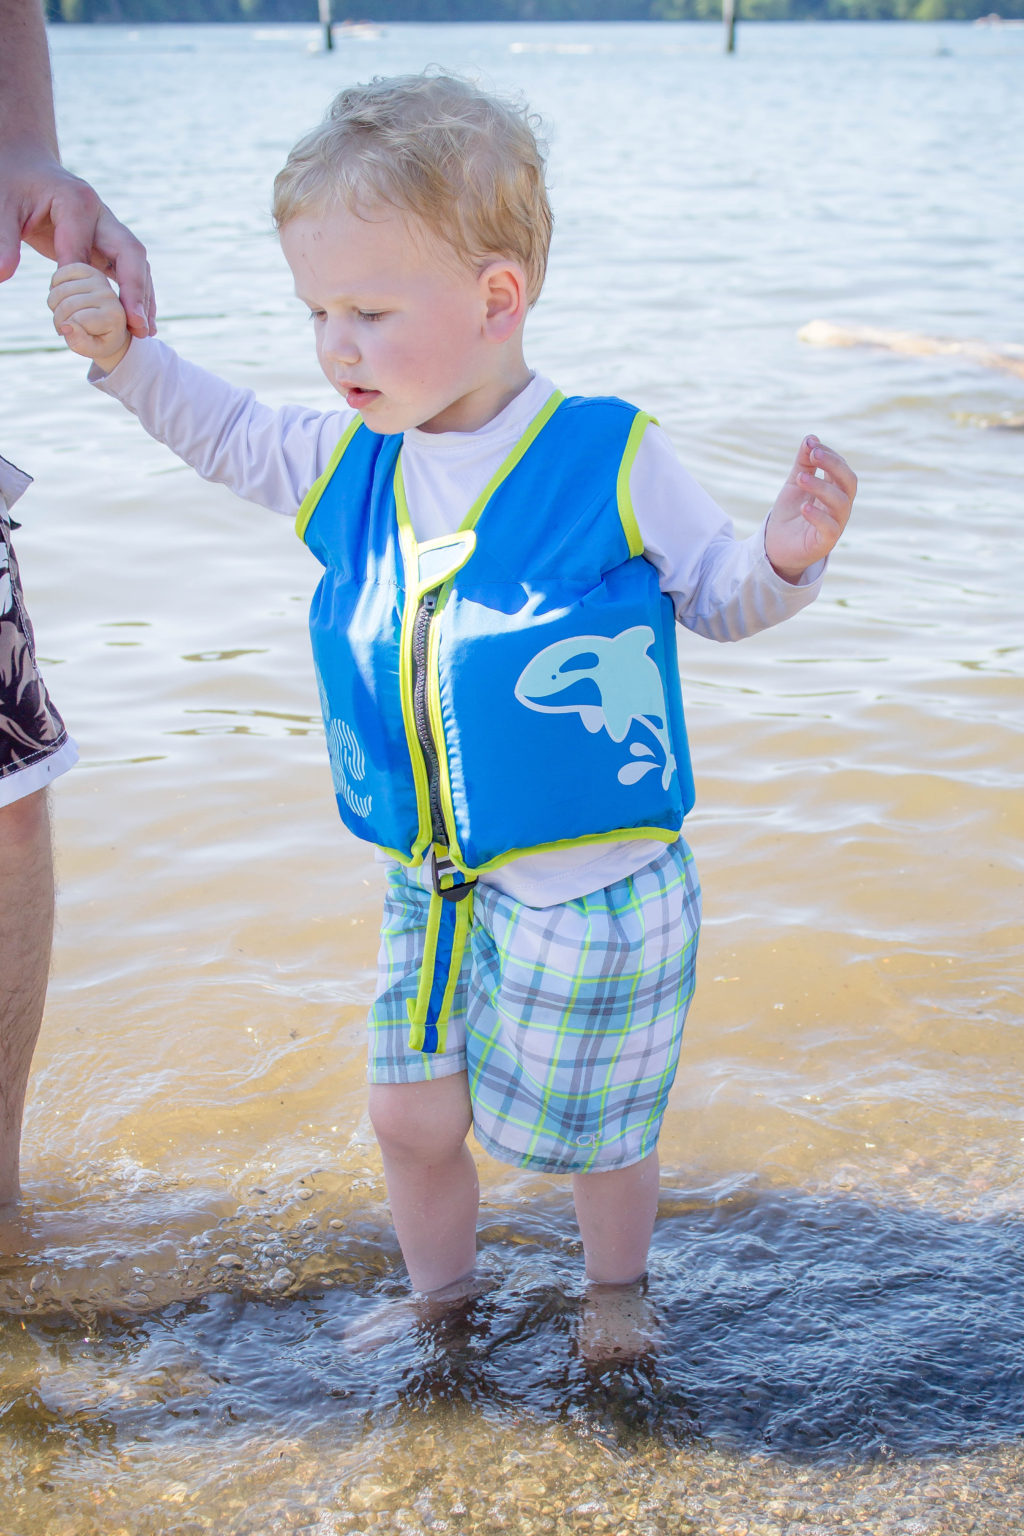 Toddler boy wearing SwimWays vest wading in water while holding man's hand